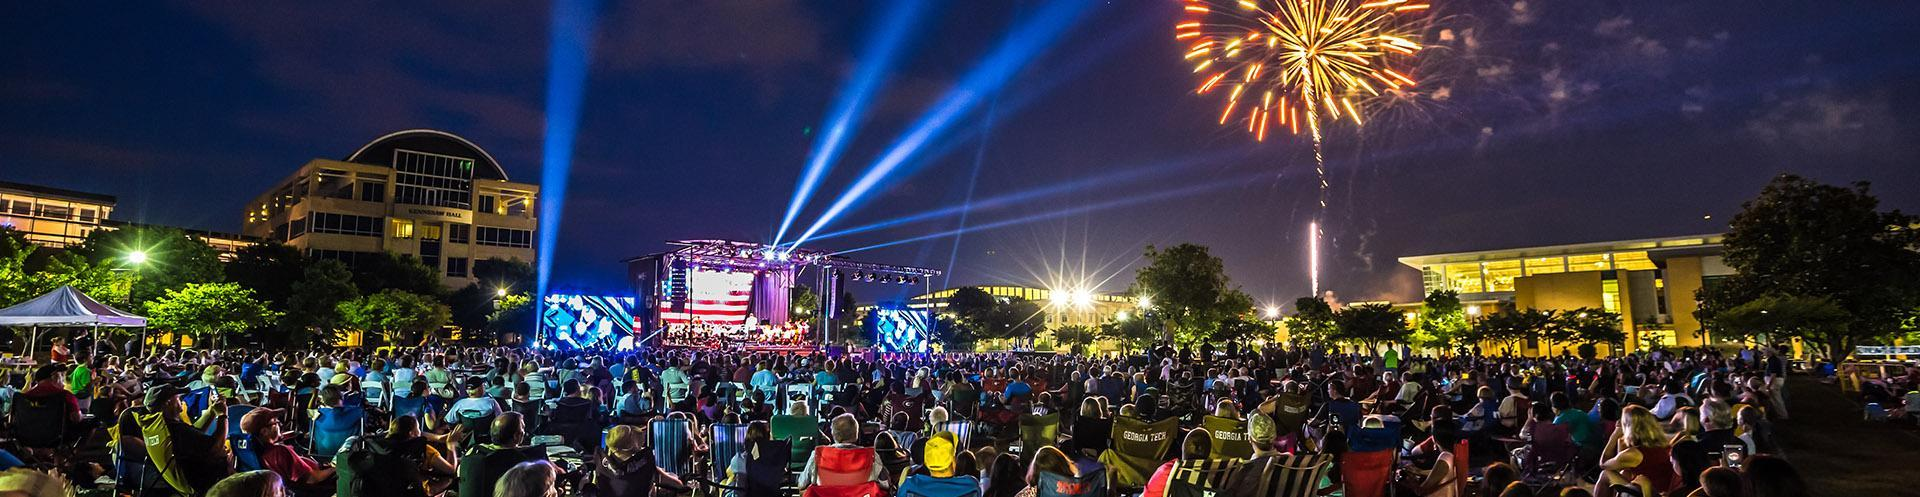 2017 Star-Spangled Spectacular & Family Fun Festival